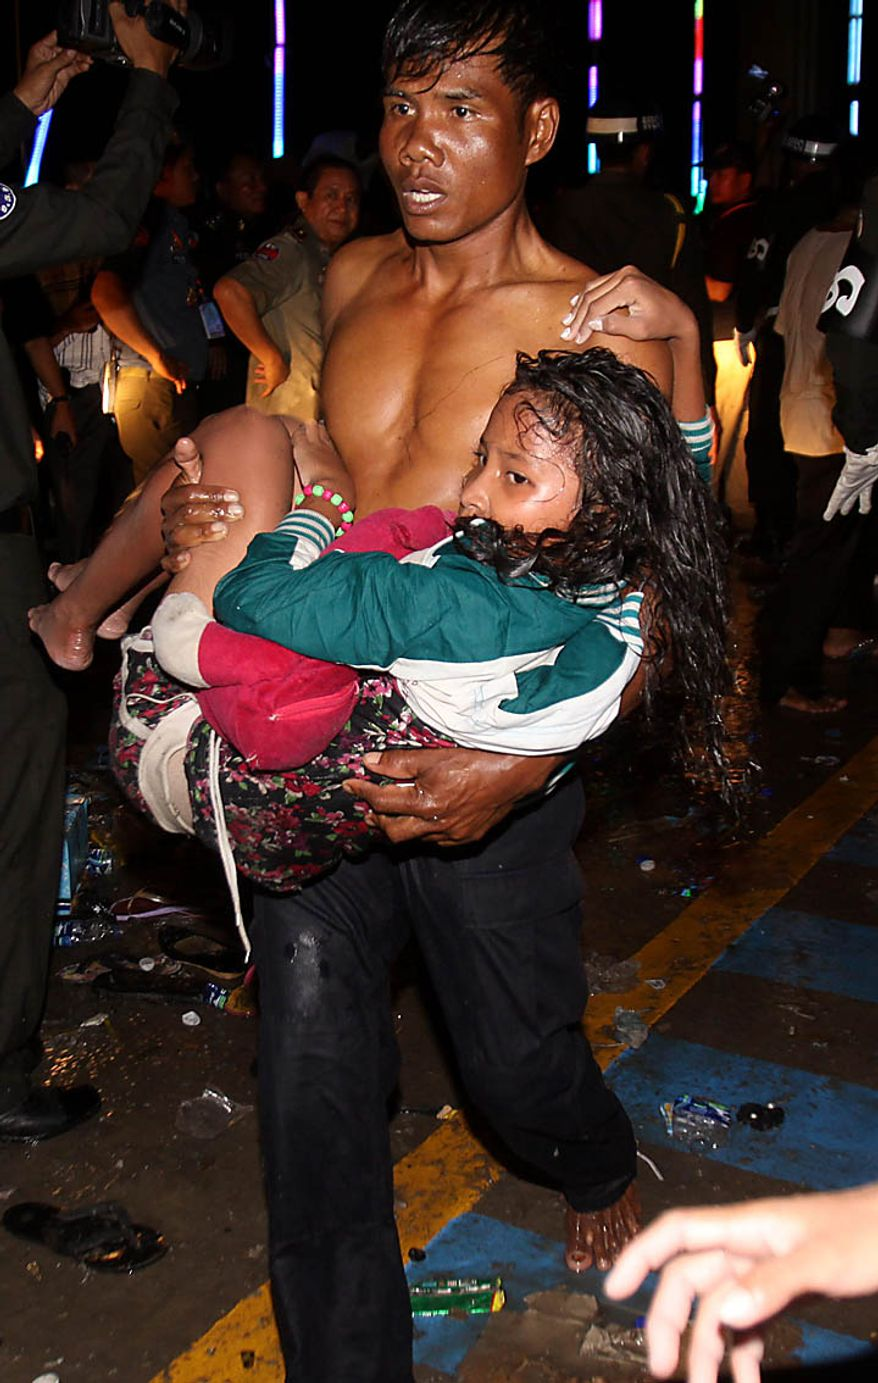 An injured Cambodian is carried by a another visitor after a  stampede onto a bridge at an accident site during the last day of celebrations of the water festival in Phnom Penh, Cambodia, Monday, Nov. 22, 2010. Thousands of people celebrating a water festival on a small island in a Cambodian river stampeded Monday evening, killing many people, a hospital official said. Hundreds more were hurt as the crowd panicked and pushed over the bridge to the mainland. (AP Photo/Heng Sinith)